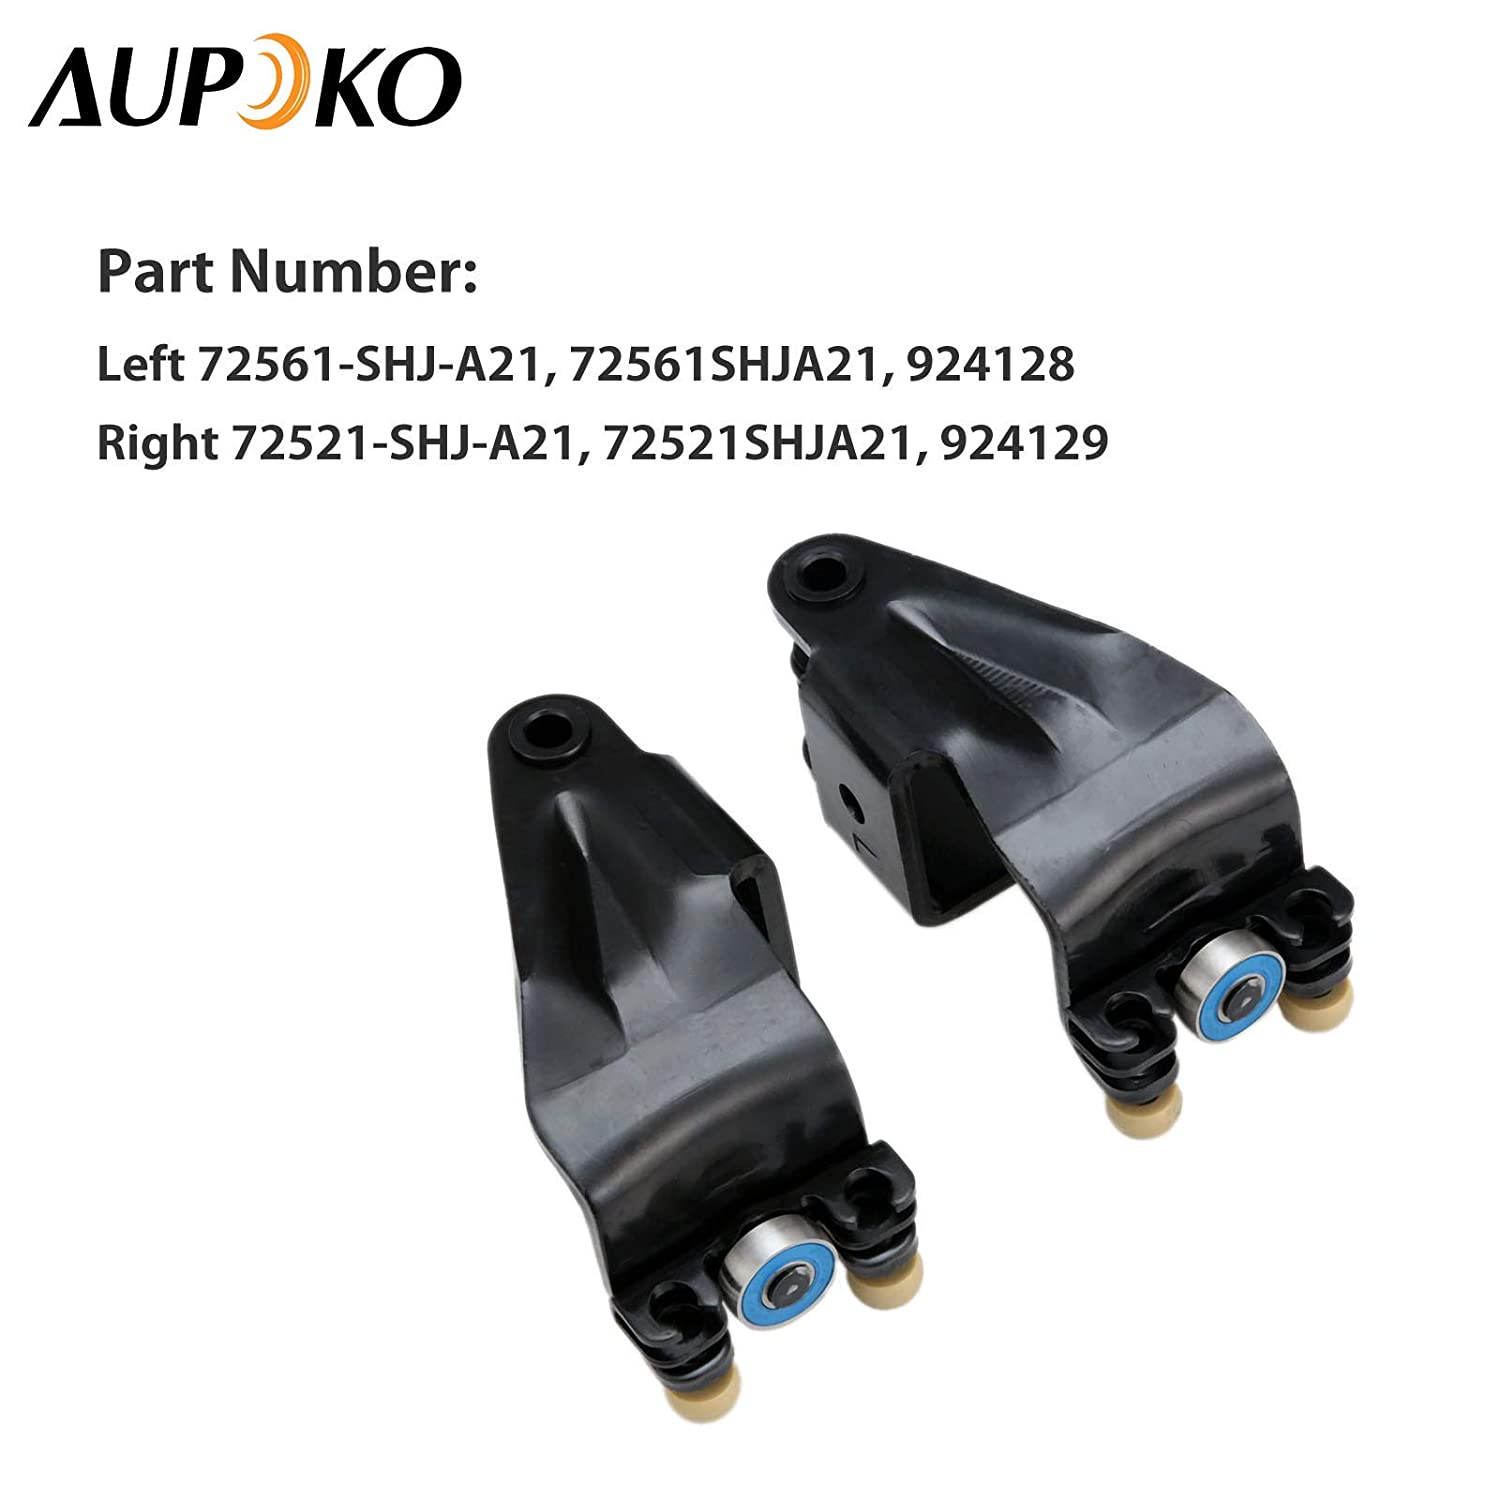 Replace# 924-129 924-128 72561-SHJ-A21 72521-SHJ-A21 Pair Power Sliding Door Roller Assembly Fits for Honda Odyssey EX EX-L Touring Model Left Driver /& Right Passenger Side Upper Center Mount Male